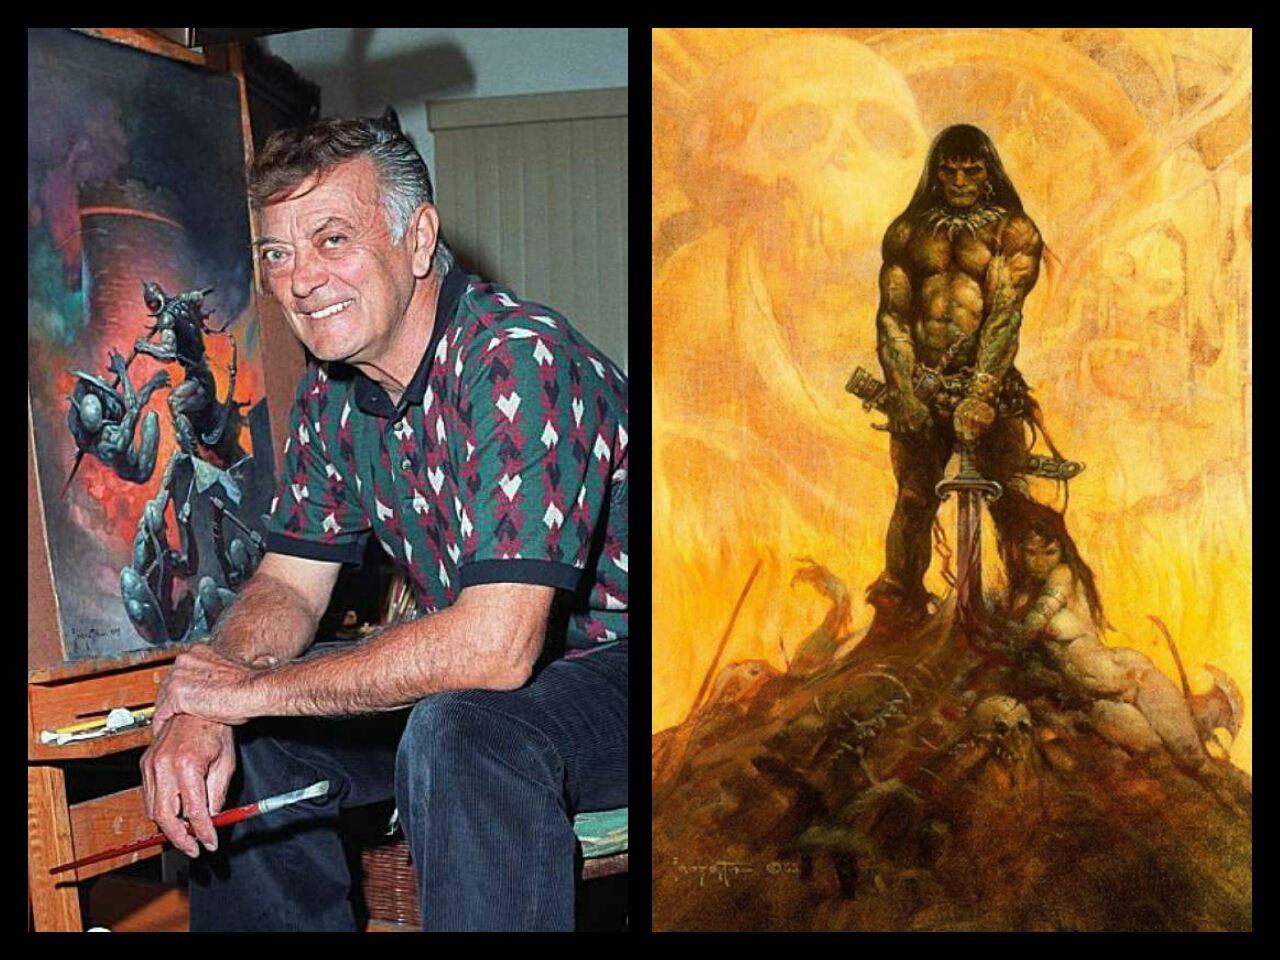 Frank Frazetta Conan Artwork